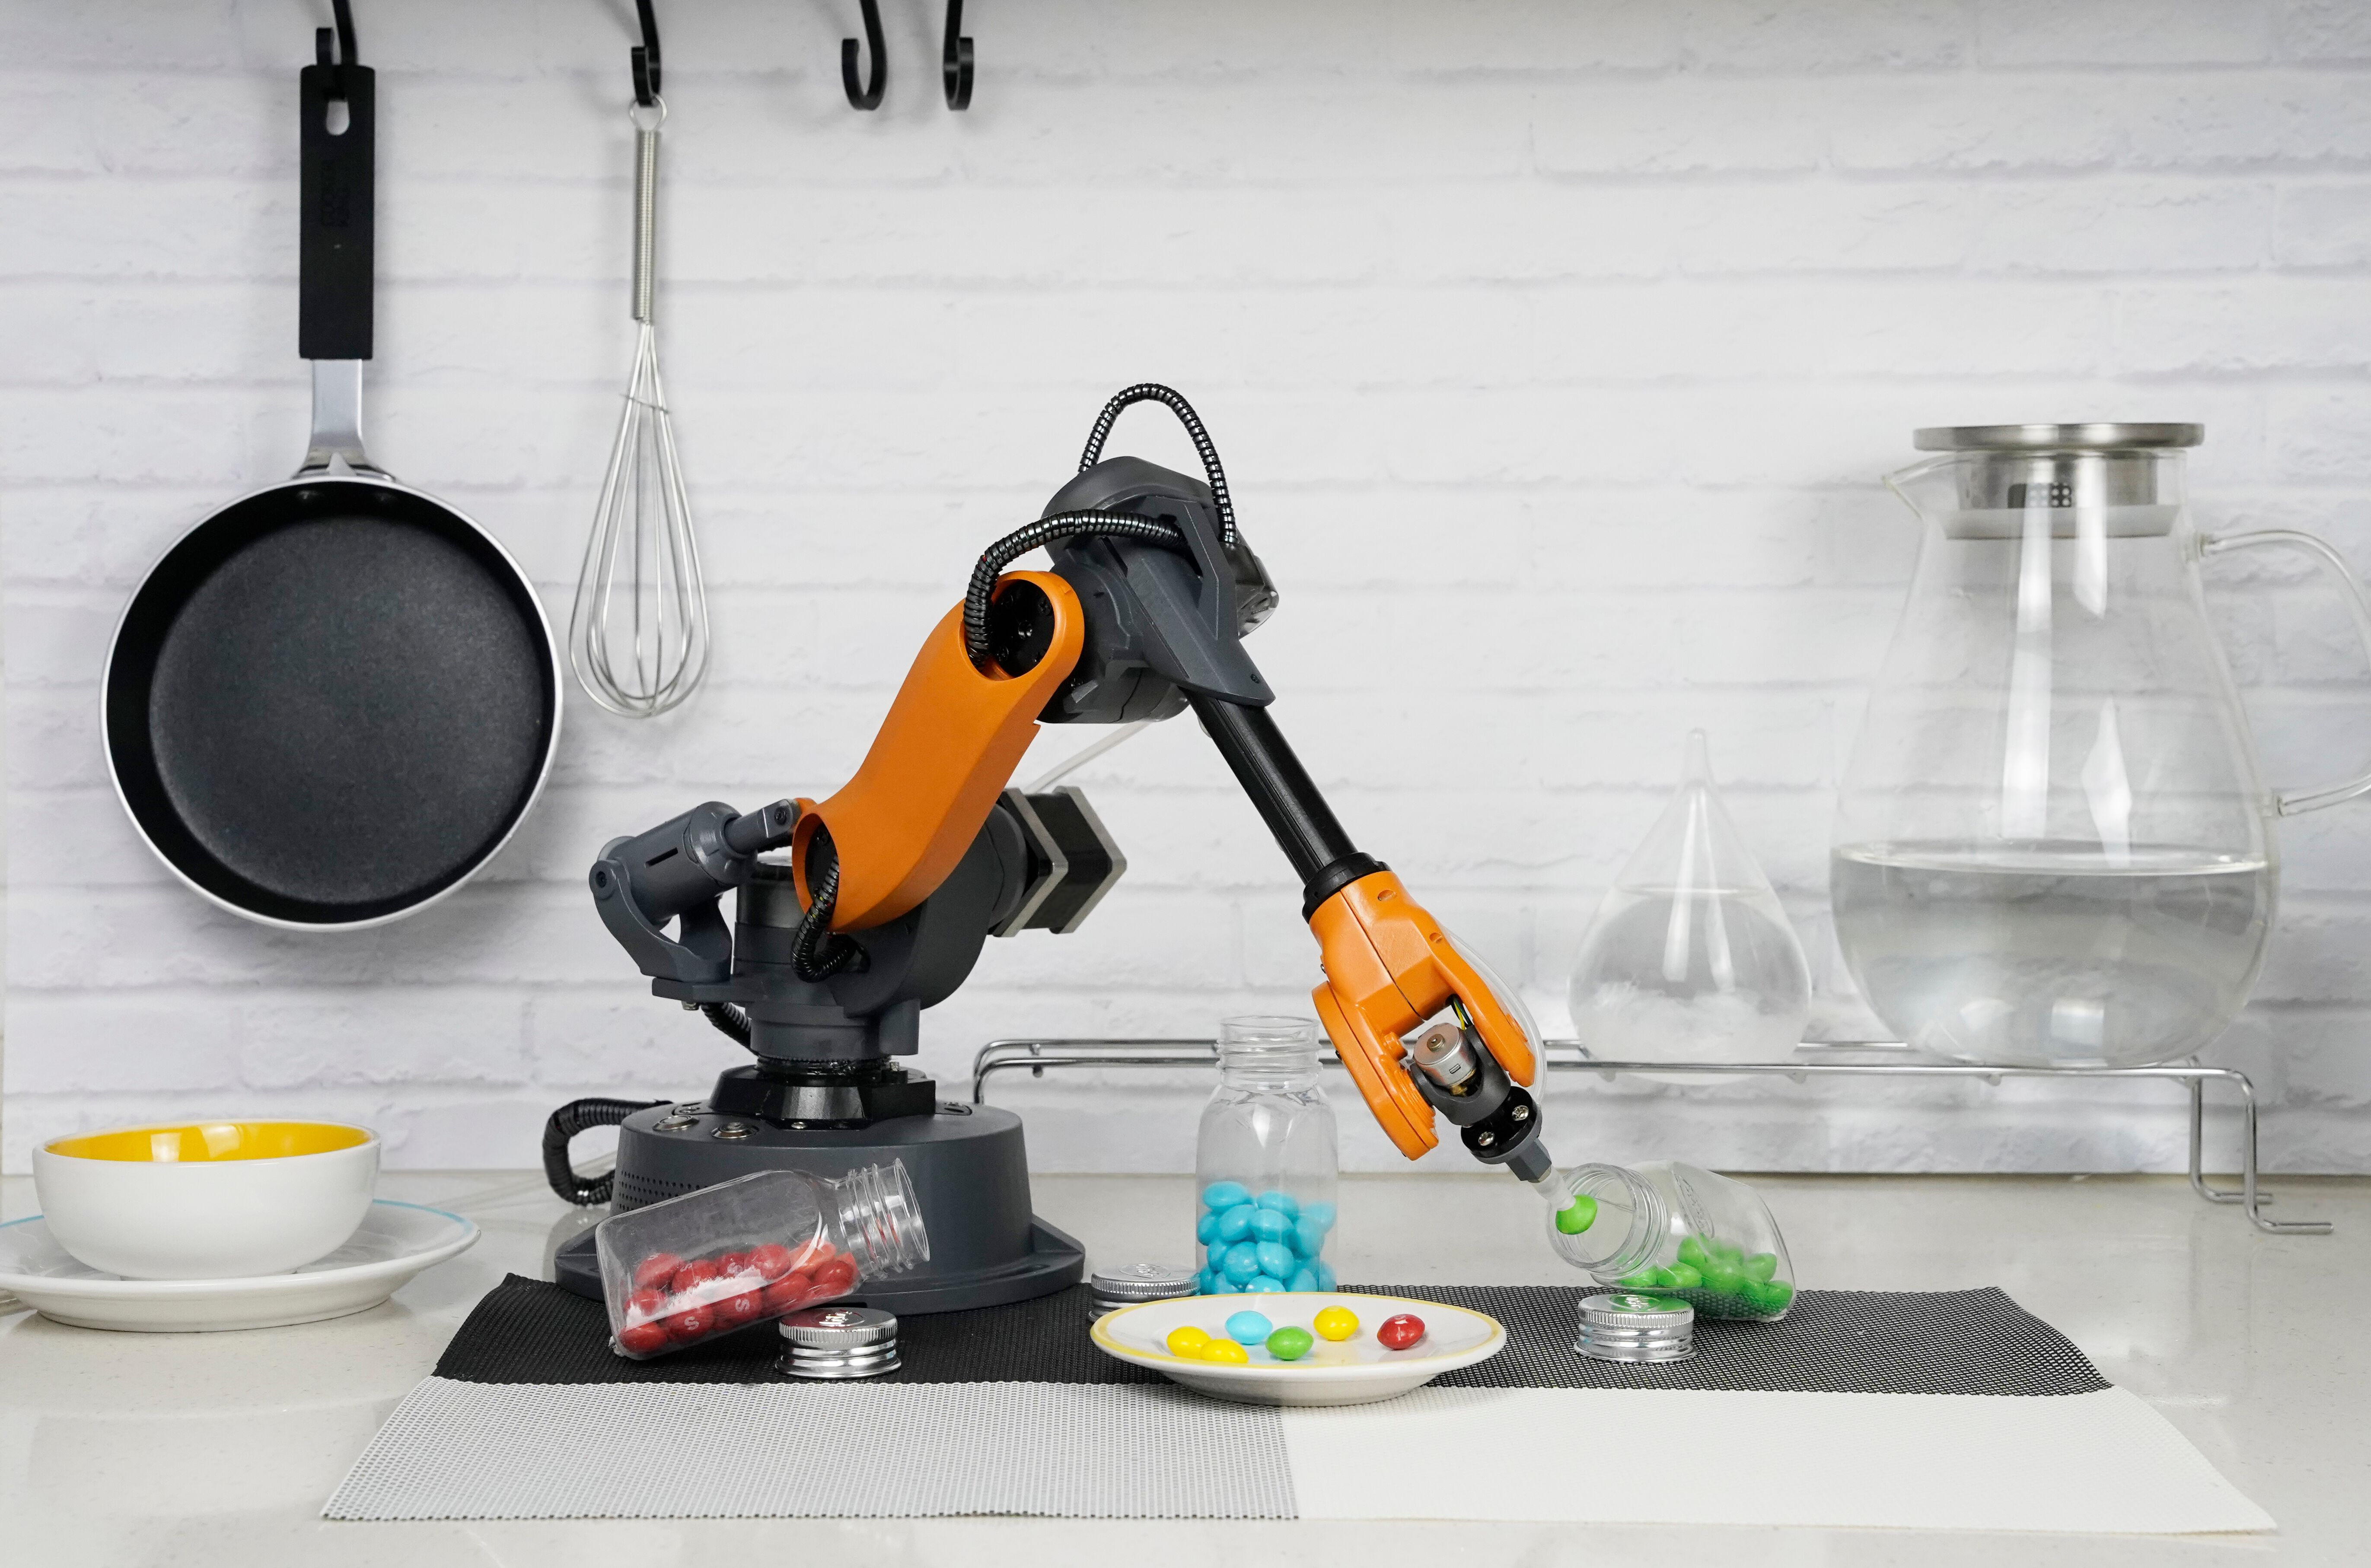 The Mirobot Brings Opportunity to Robot Arms - DZone IoT